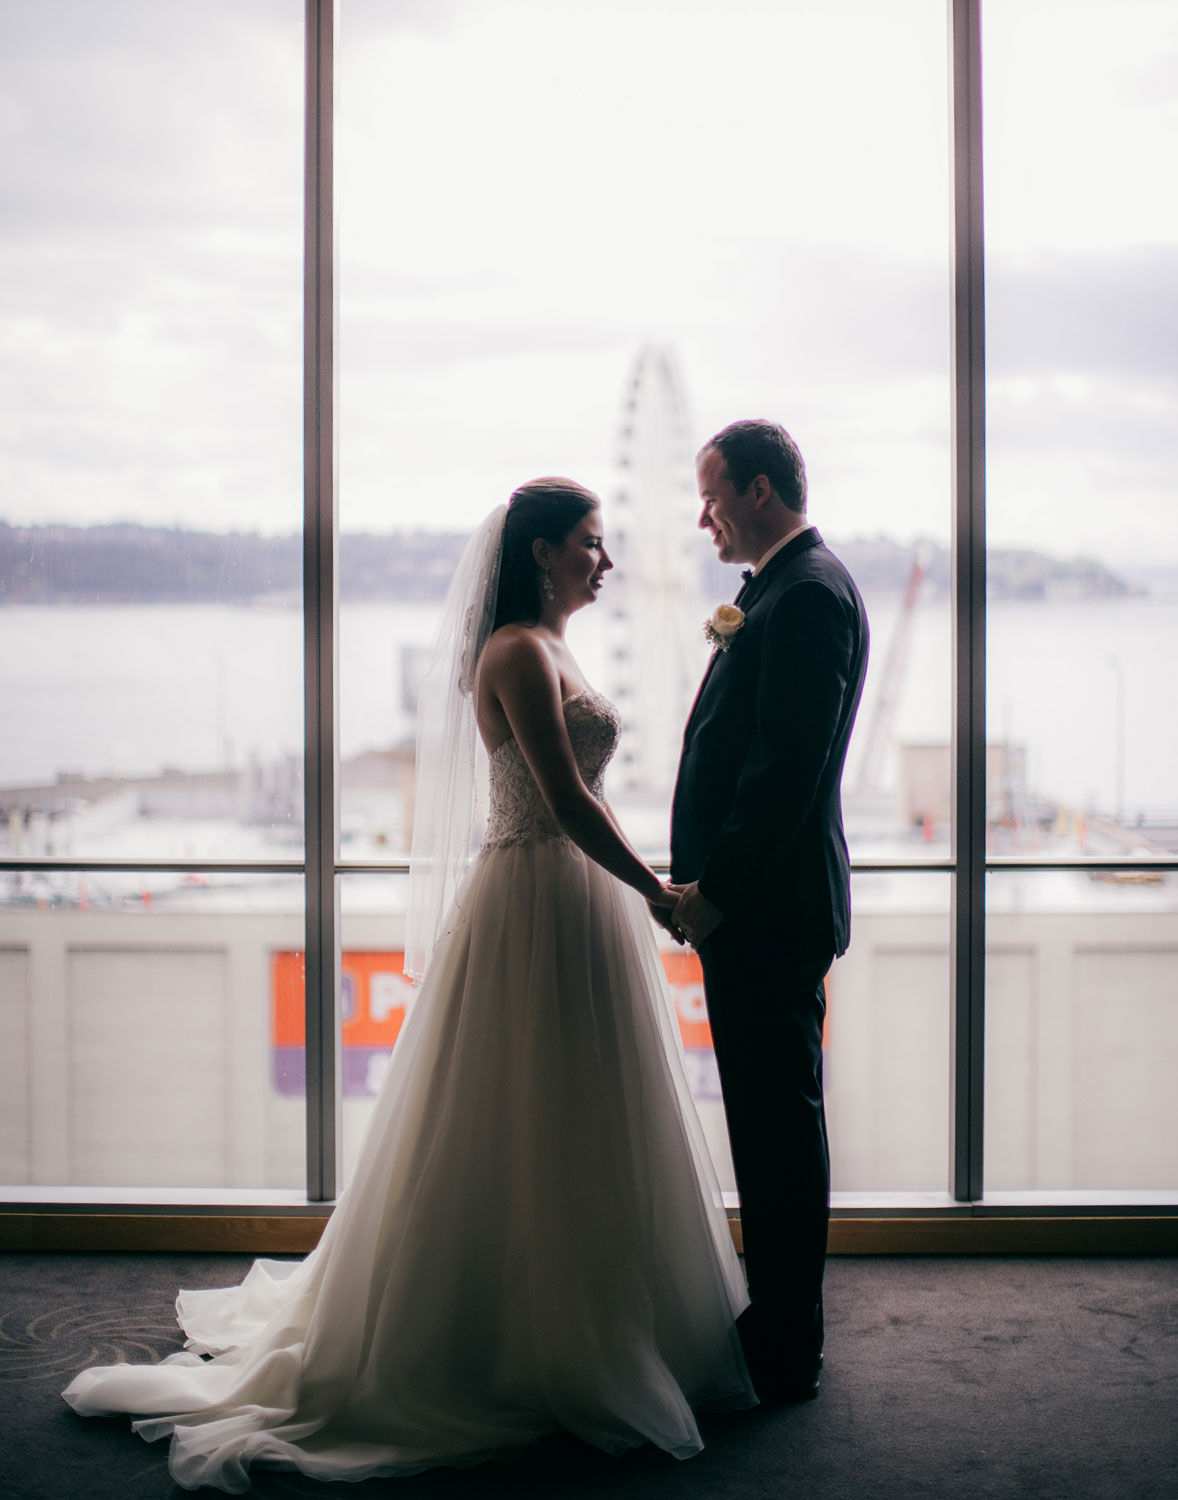 four-seasons-seattle-wedding-clane-gessel-photos-09